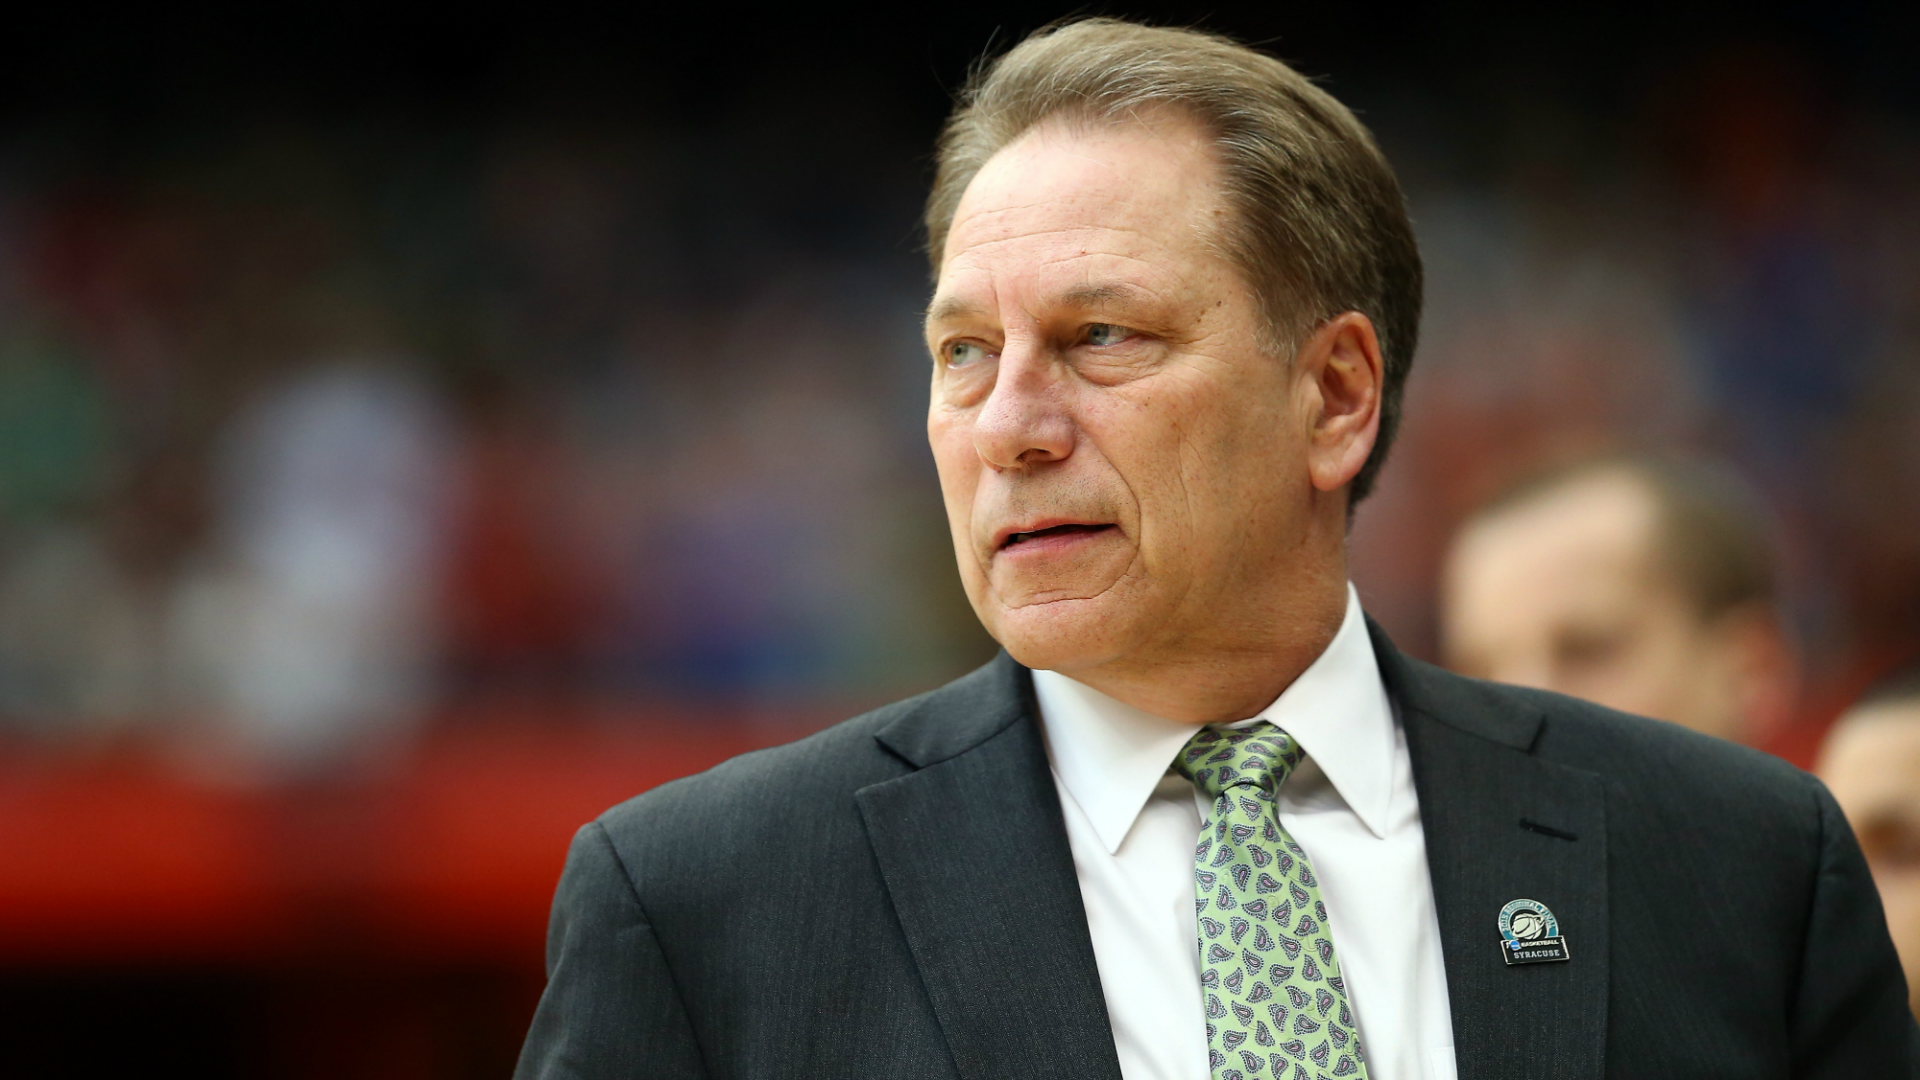 Michigan State, Florida will have 2000 title game rematch this year